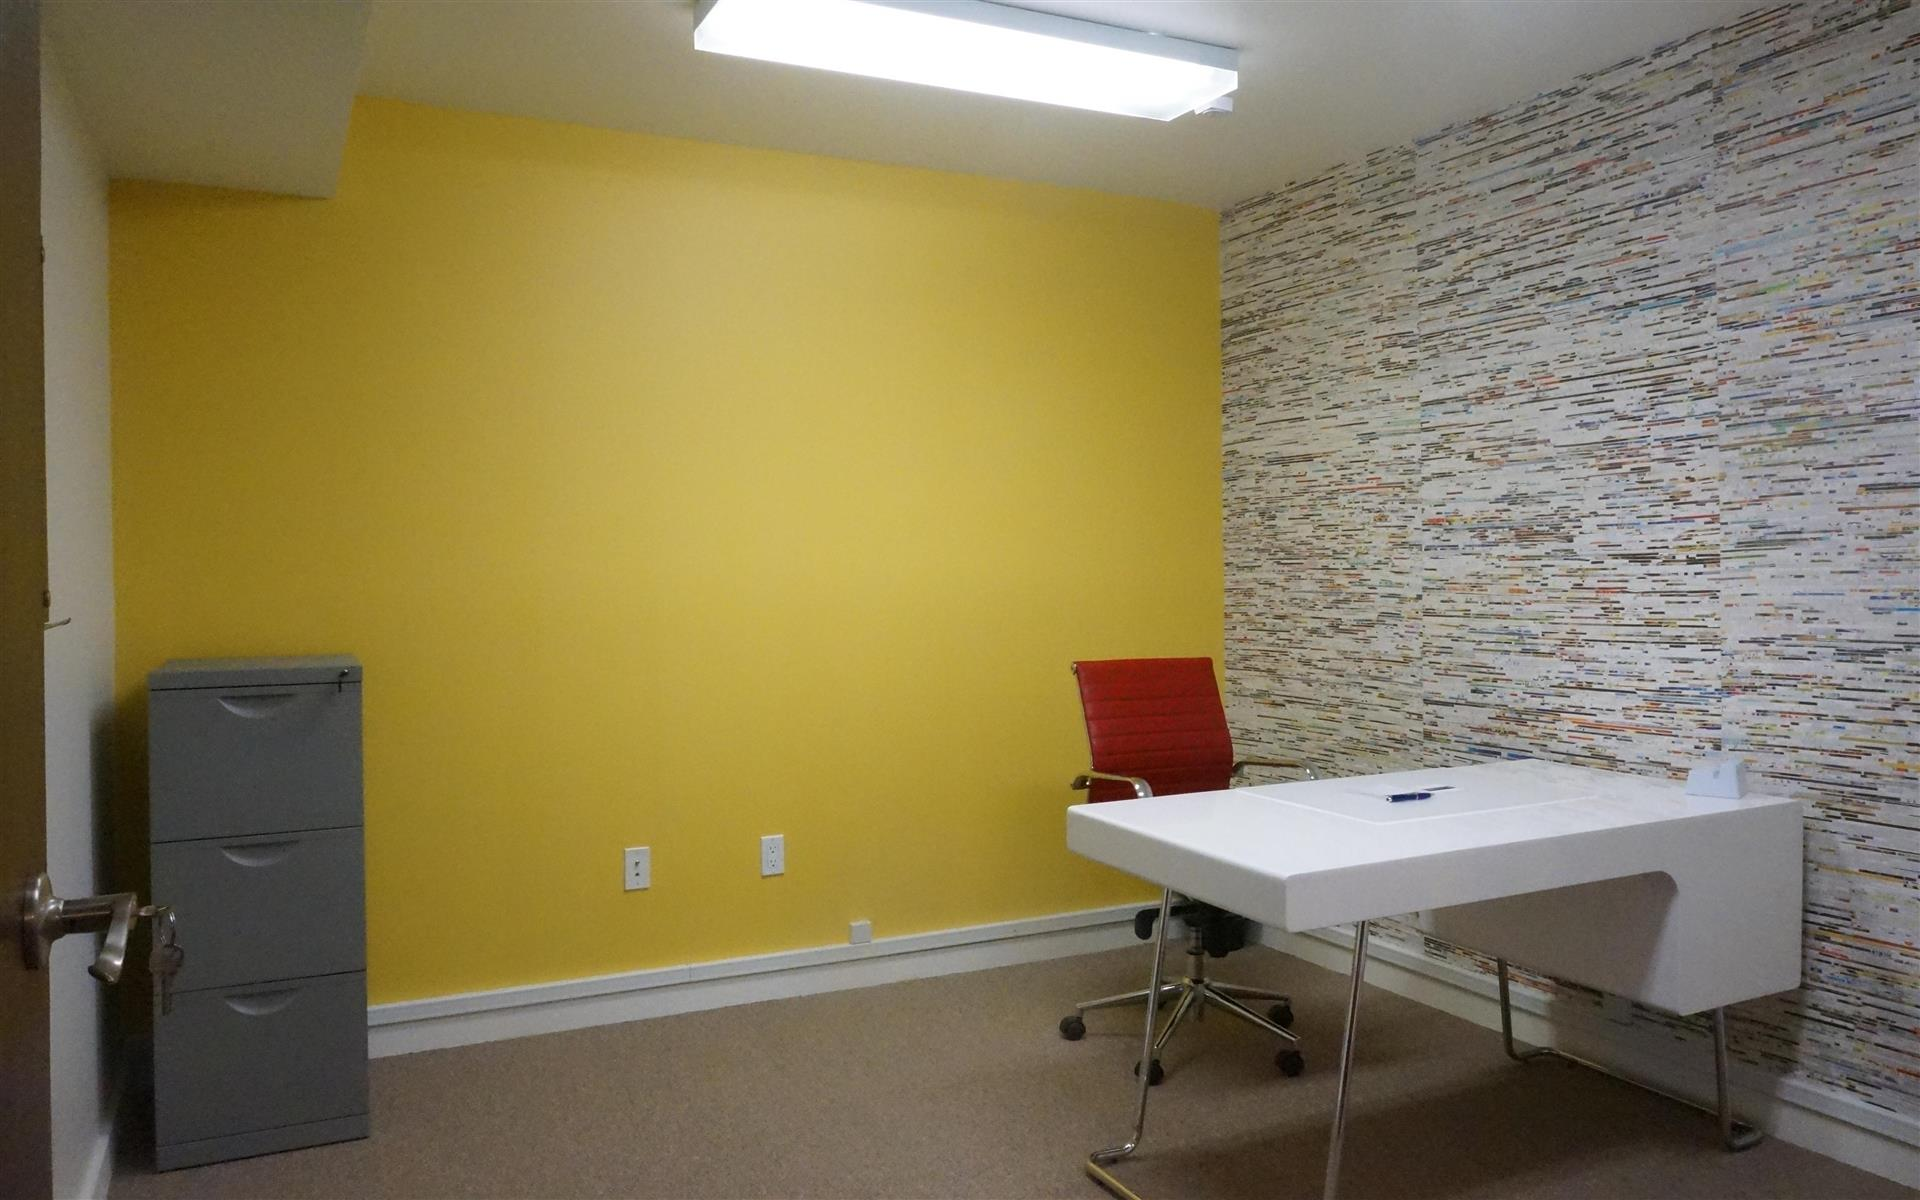 My Other Office - Mosaic Suite - Office 2 (24 hour access)